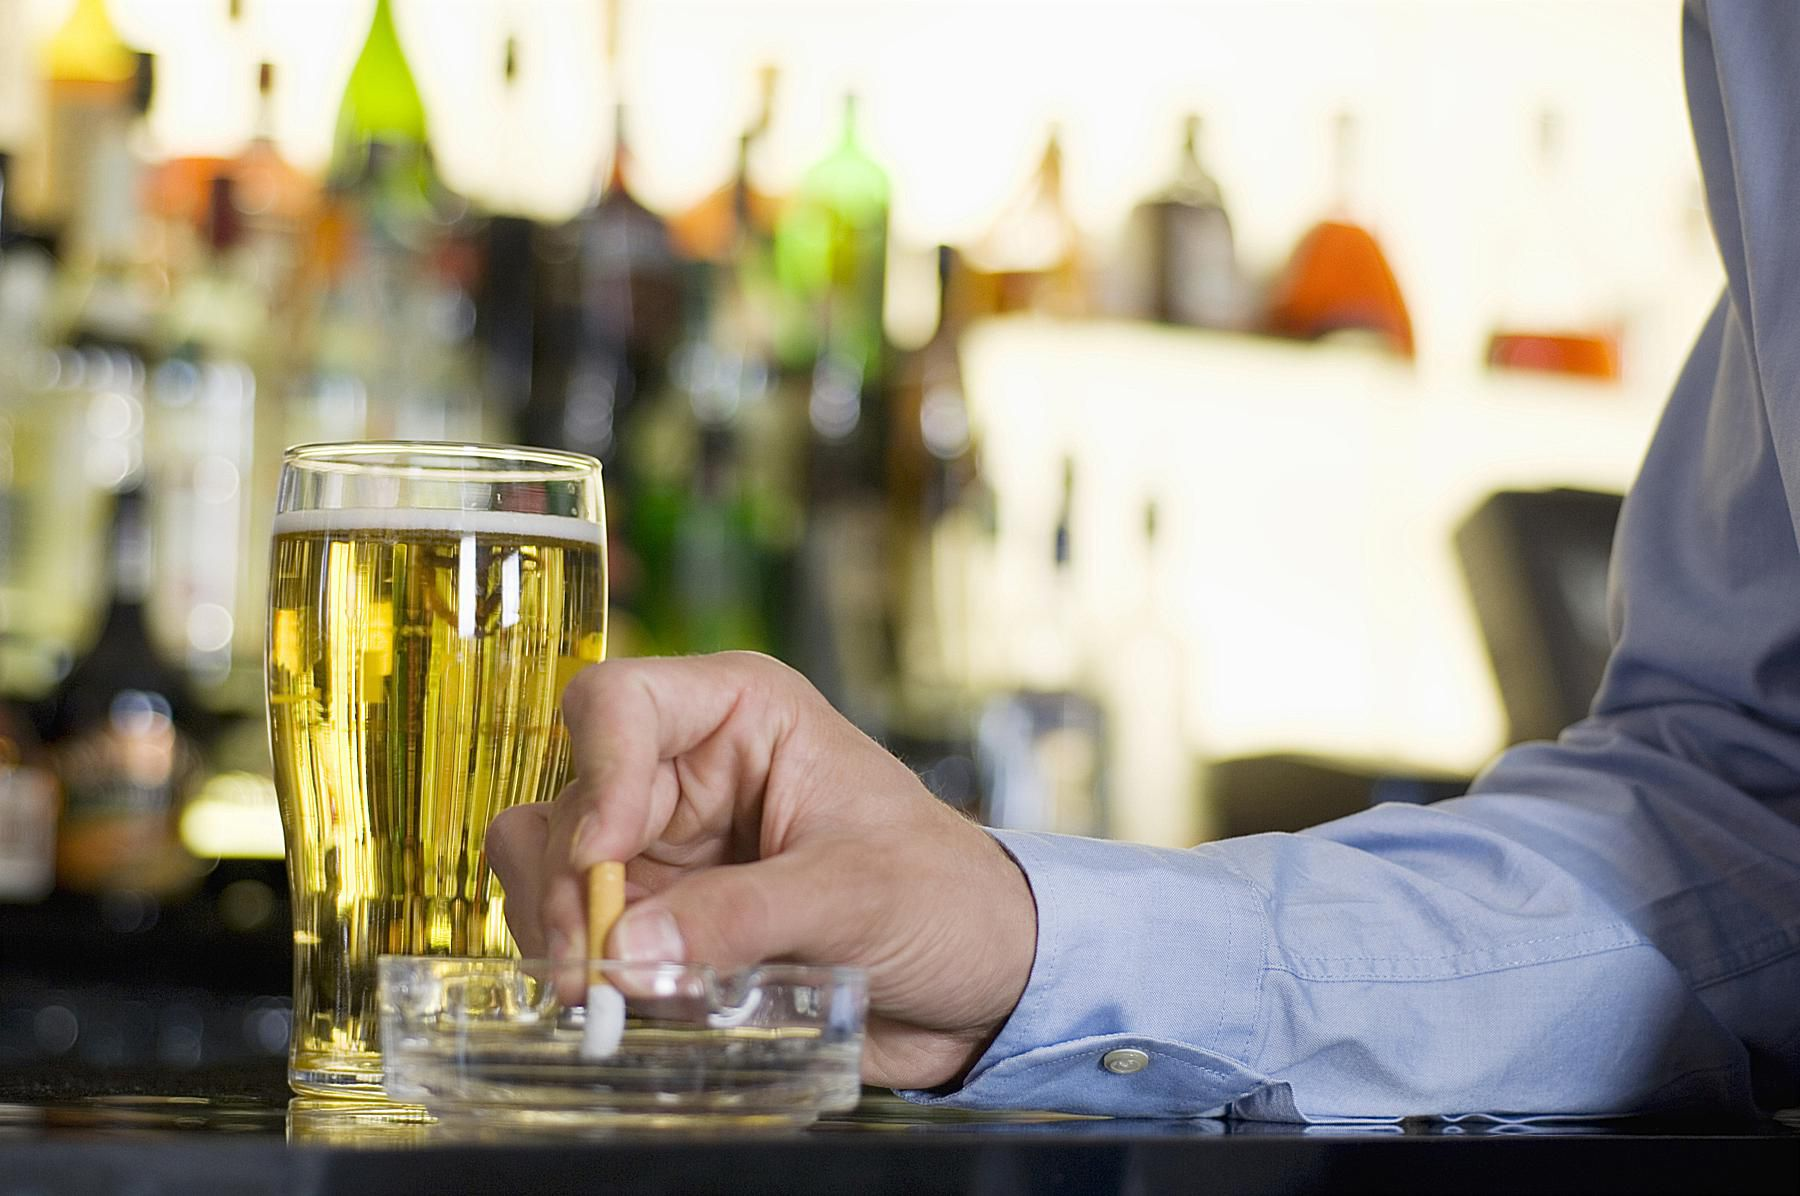 How To Stop Smoking When You Drink Alcohol